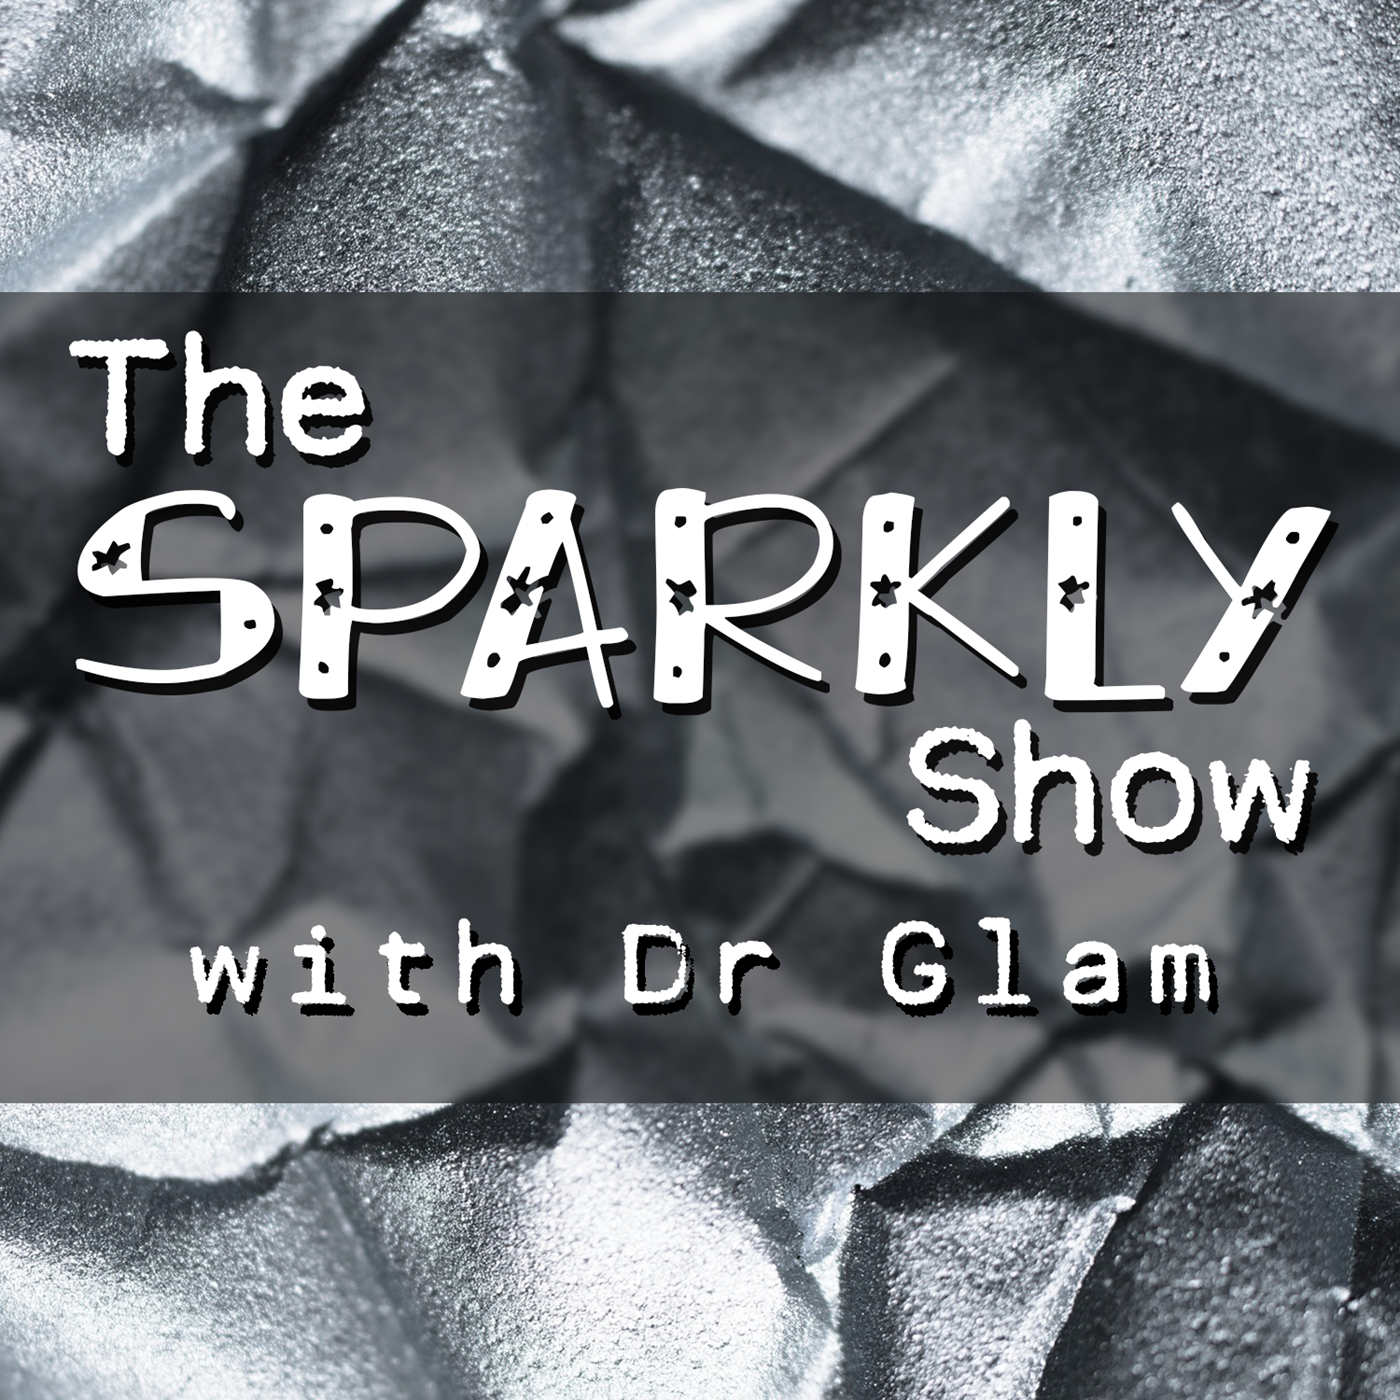 The Sparkly Show with Dr Glam